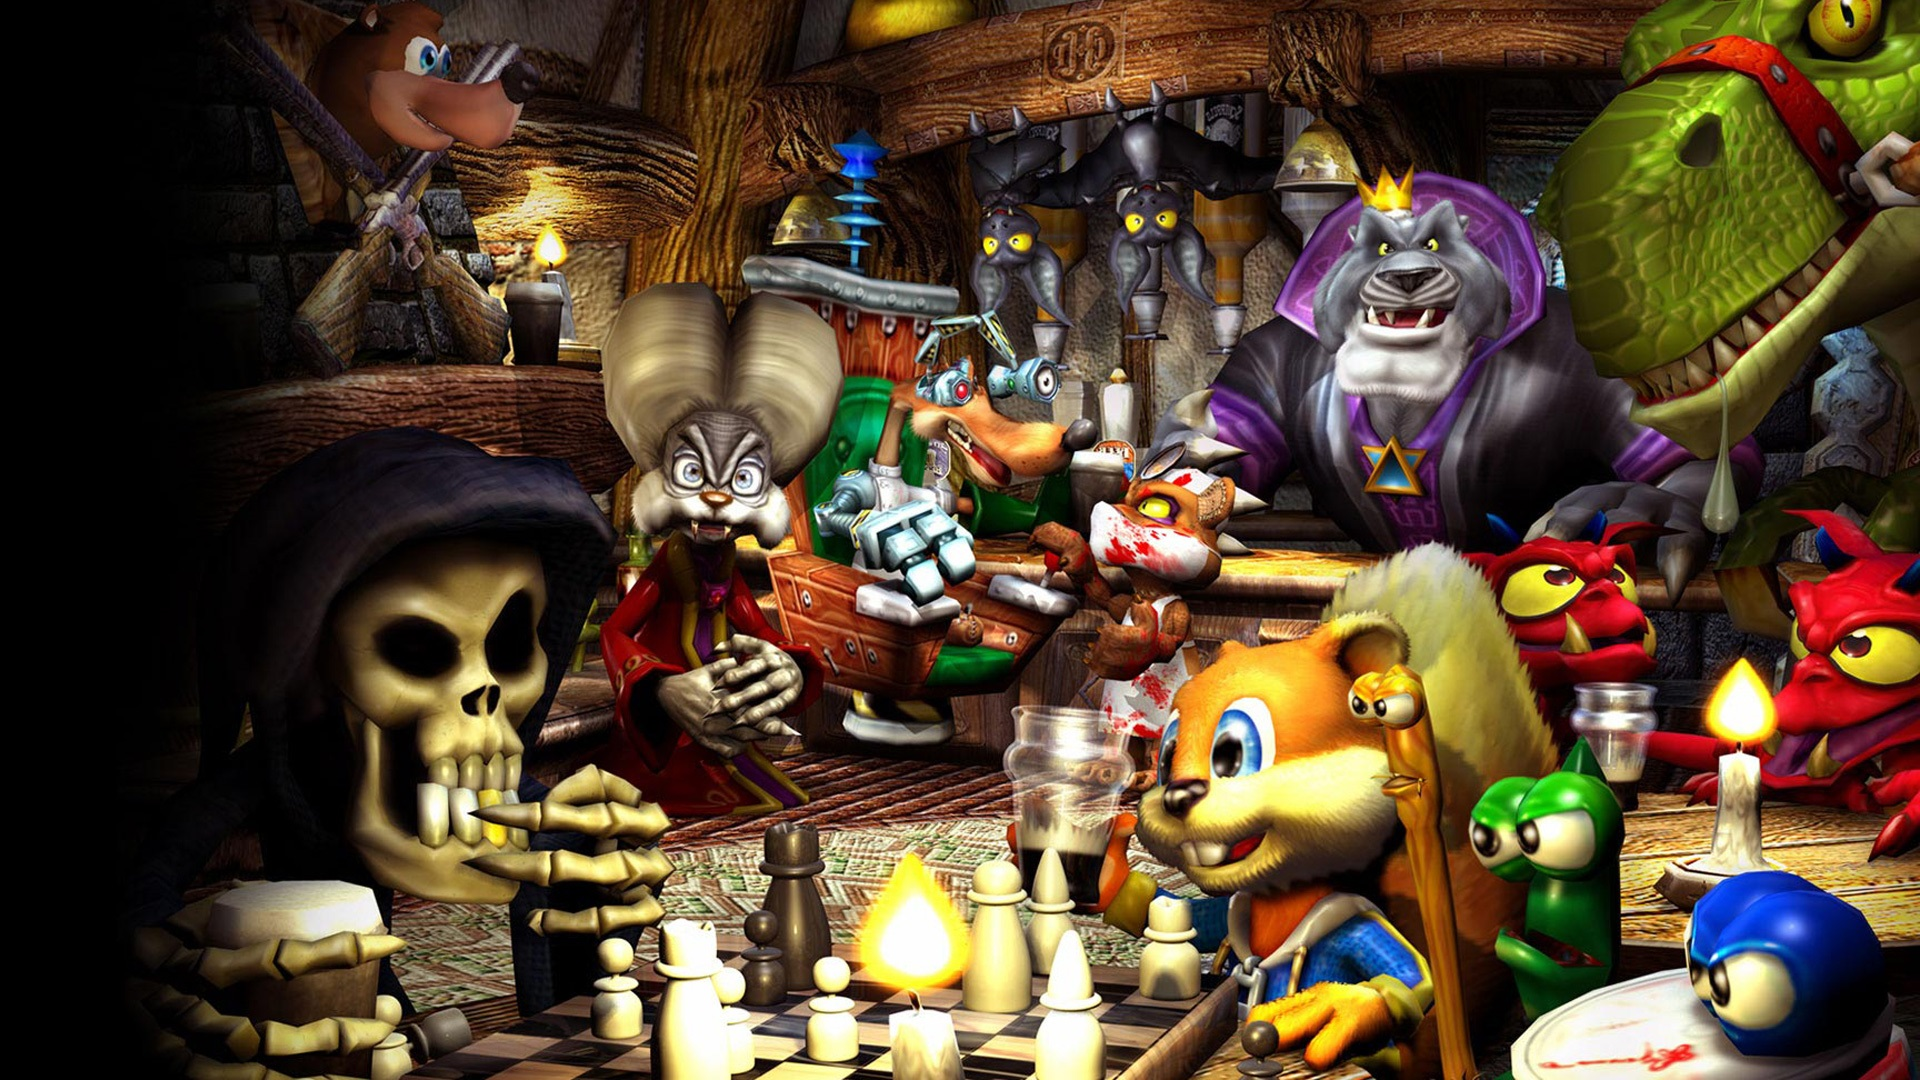 Conker's Bad Fur Day Backgrounds, Compatible - PC, Mobile, Gadgets| 1920x1080 px